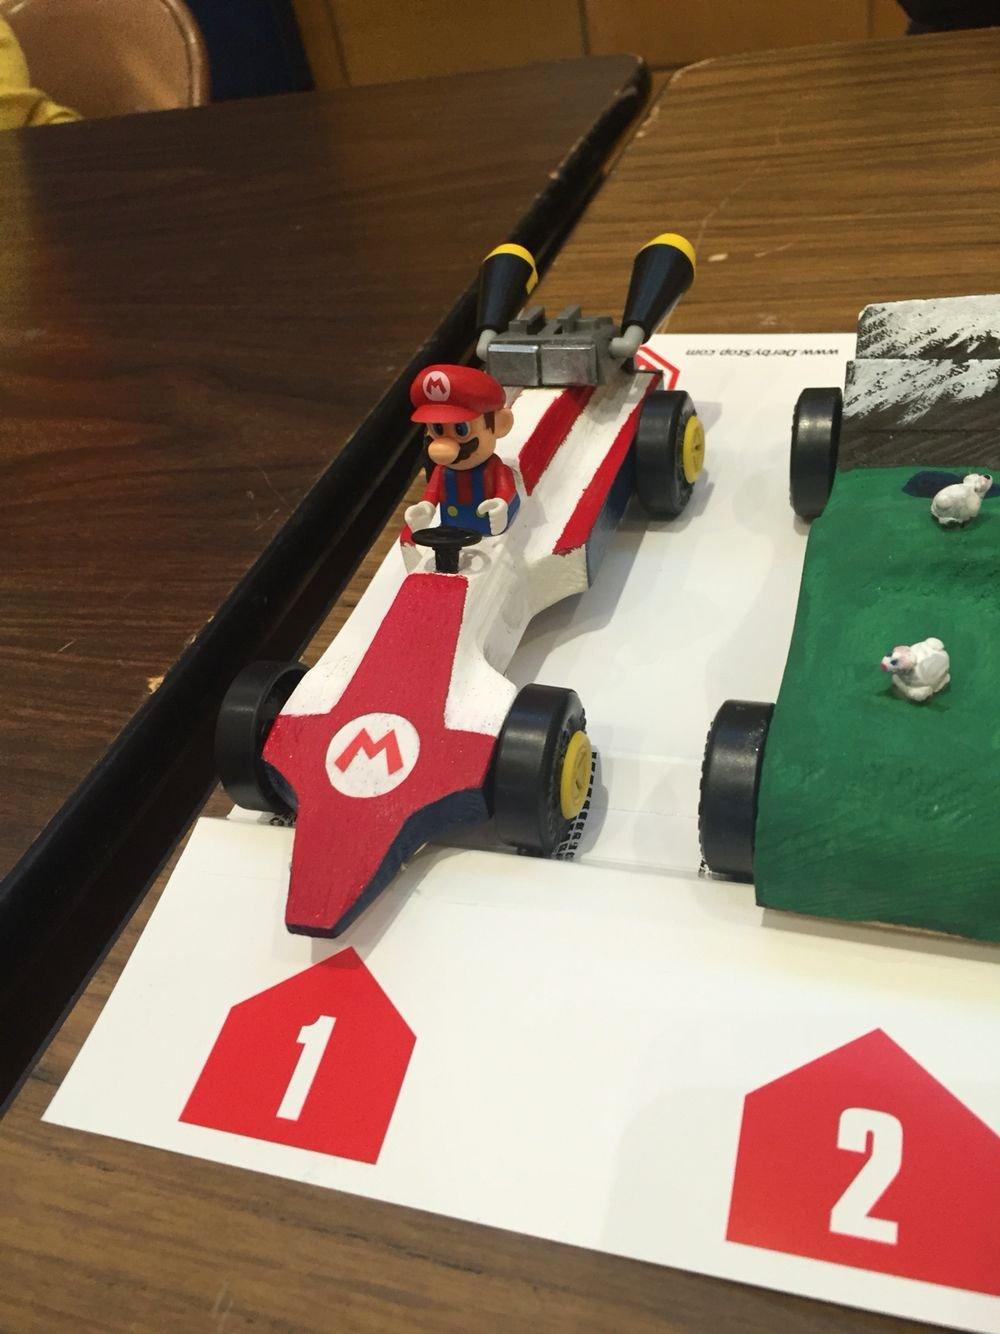 Mario Pinewood Derby Car Inspirational Mario Kart Pinewood Derby Car